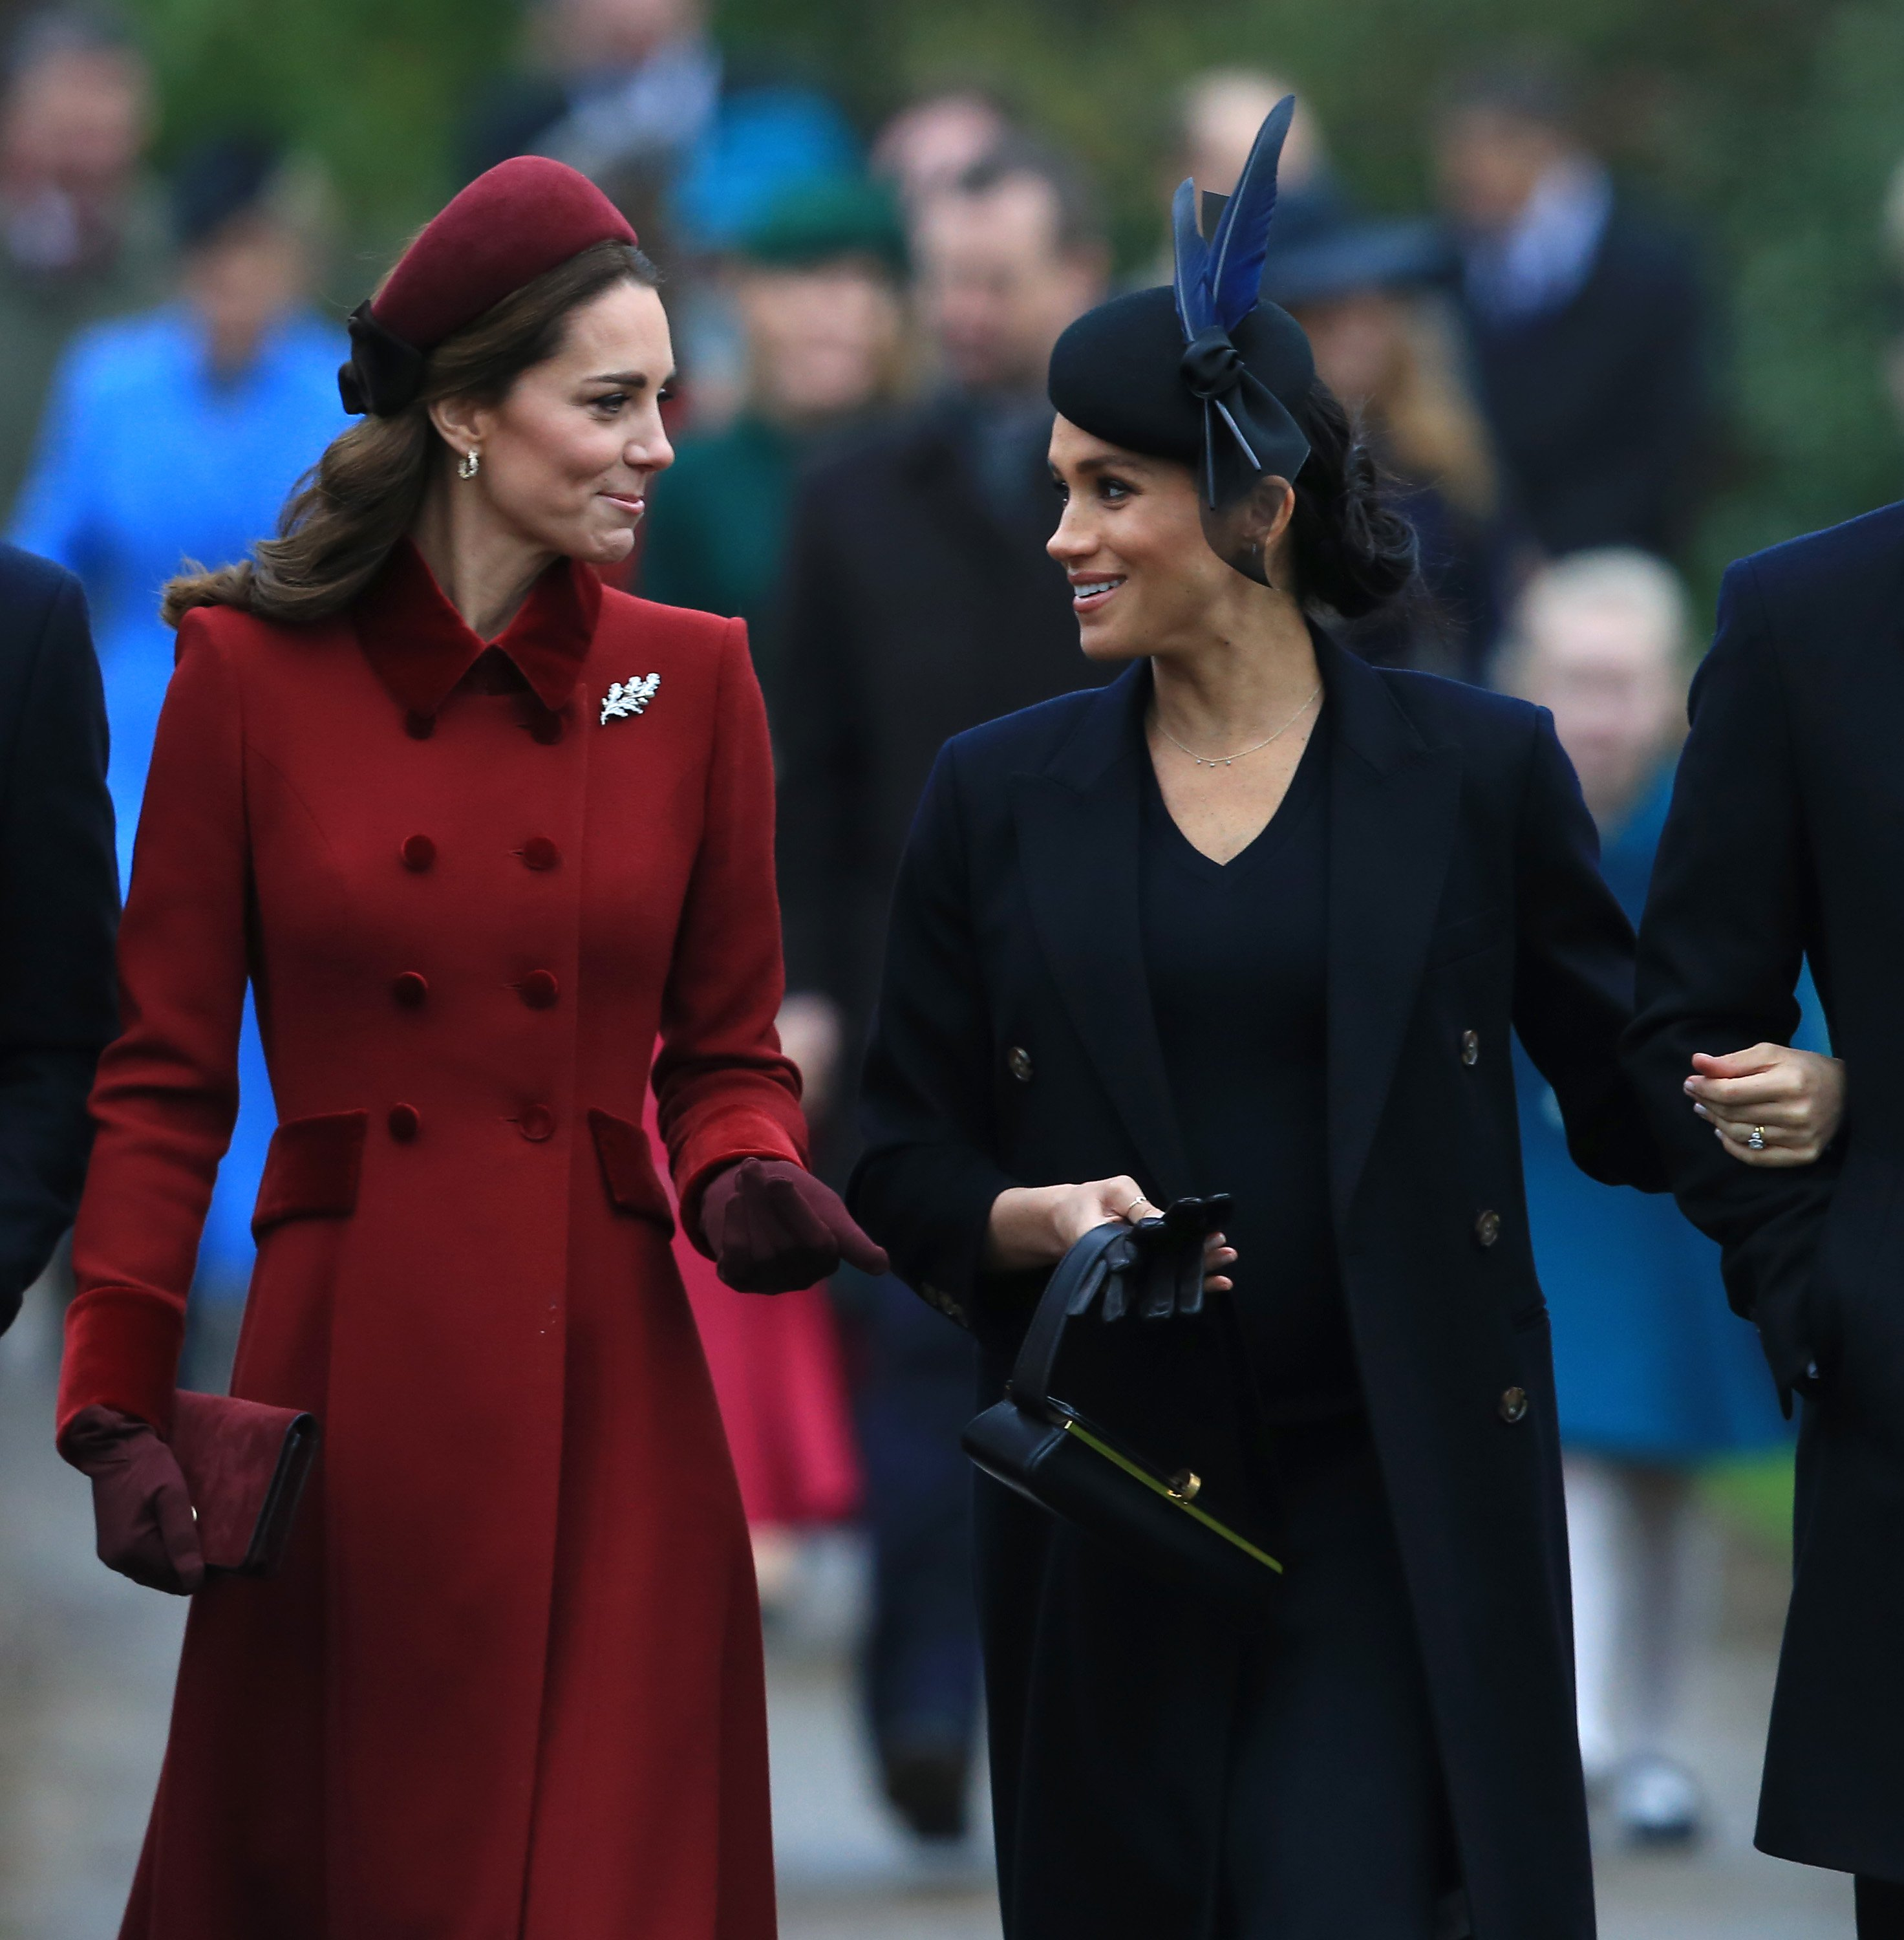 Kate Middleton and Meghan Markle at an event making conversation | Photo: Getty Images